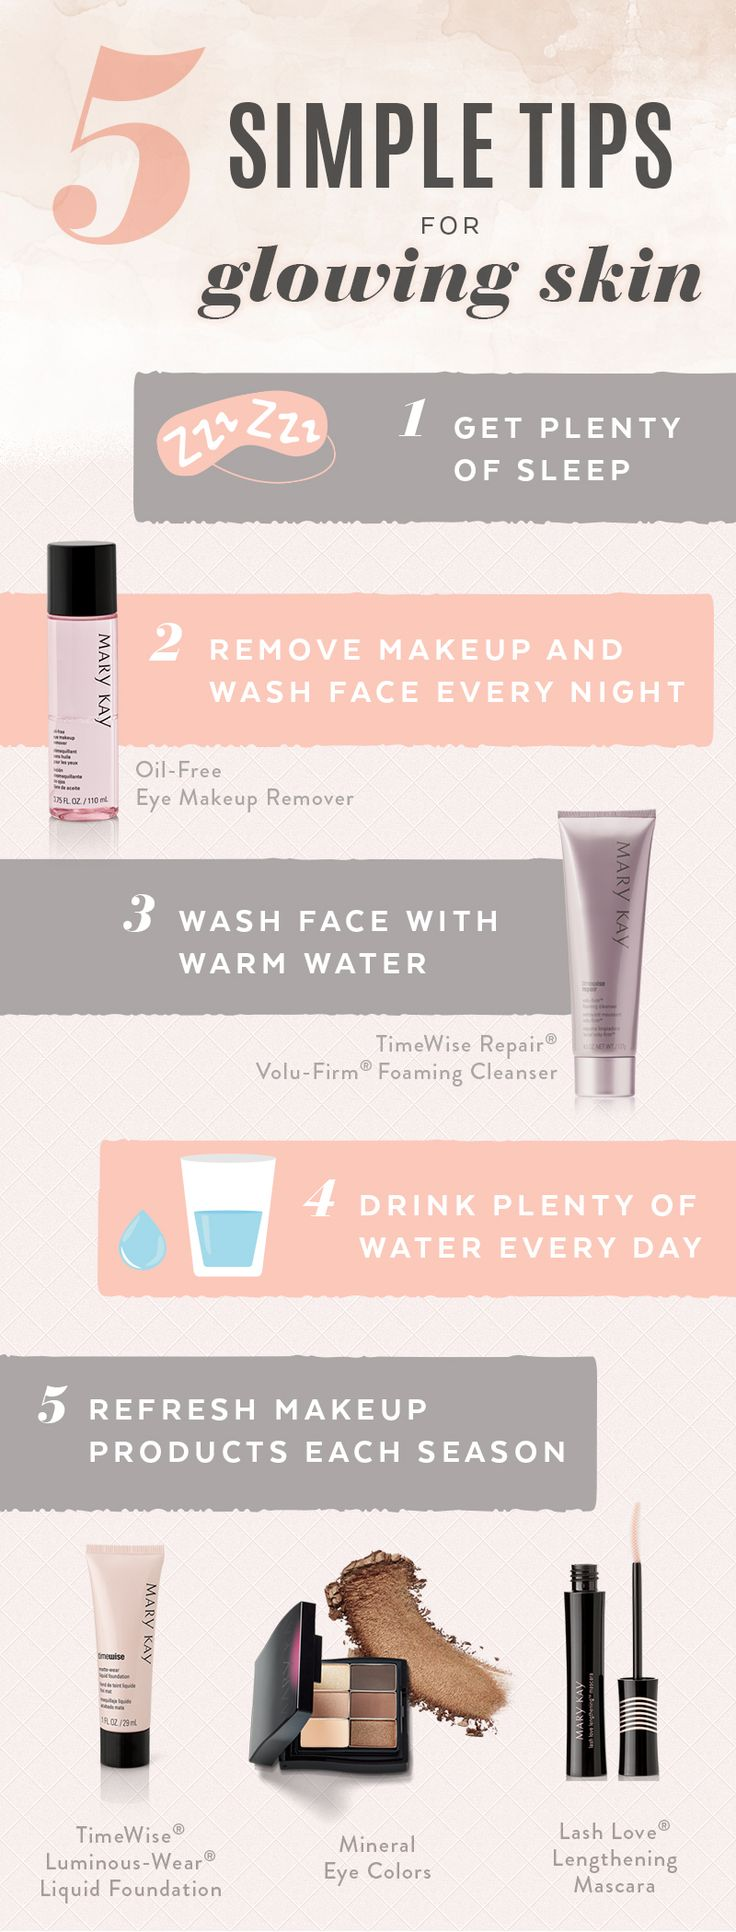 Skin care goes deeper than face wash and quality skin care products. Removing makeup, getting enough sleep, and drinking plenty of water are a few more easy ways to keep your skin glowing! | Mary Kay